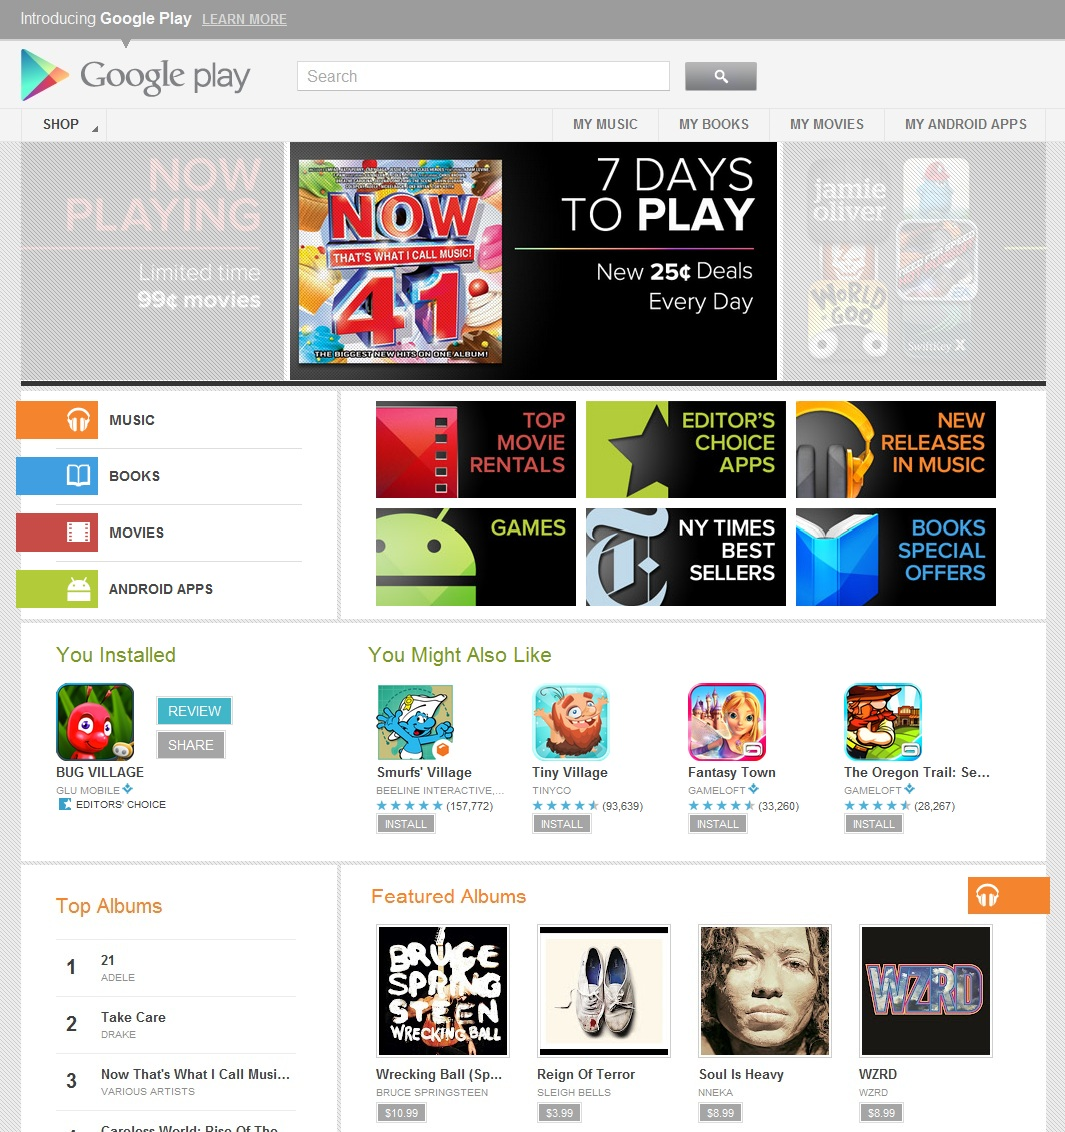 The google play